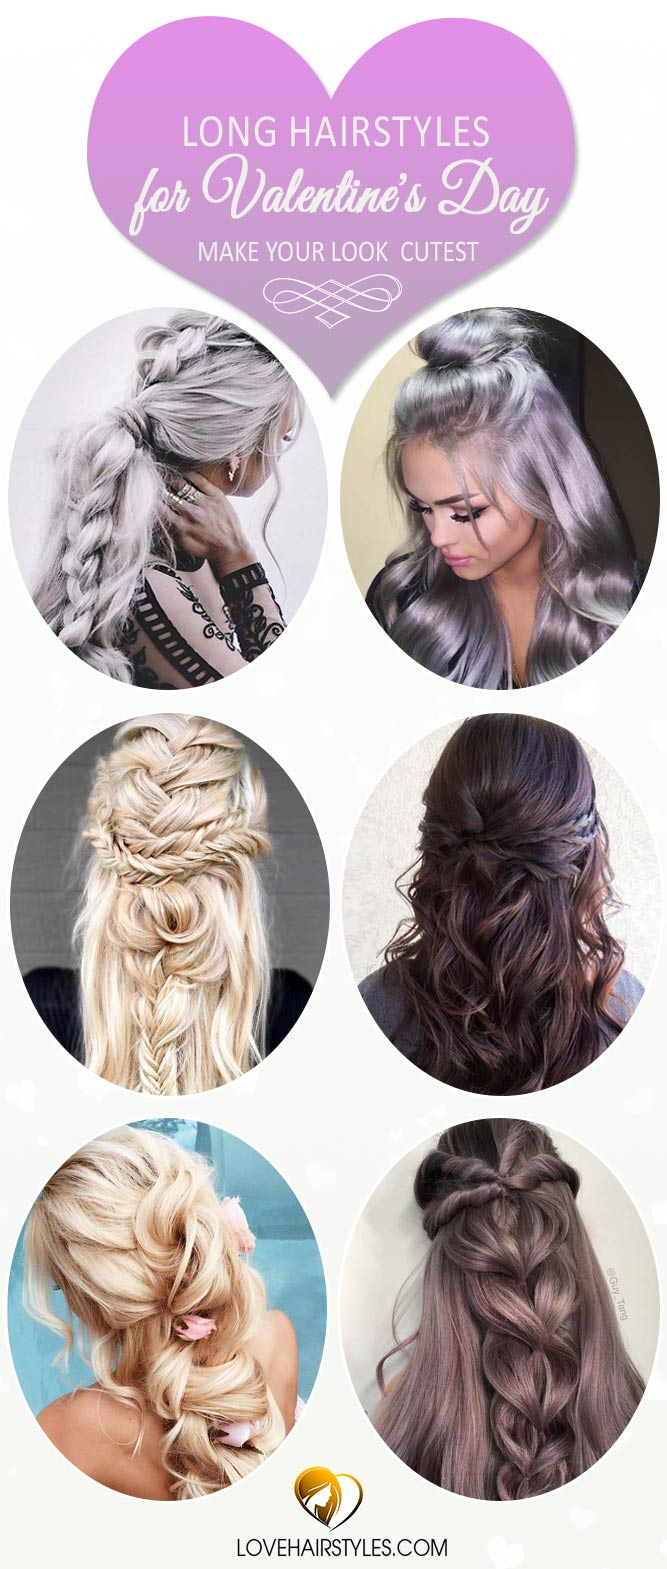 Long Hairstyles for Valentine's Day